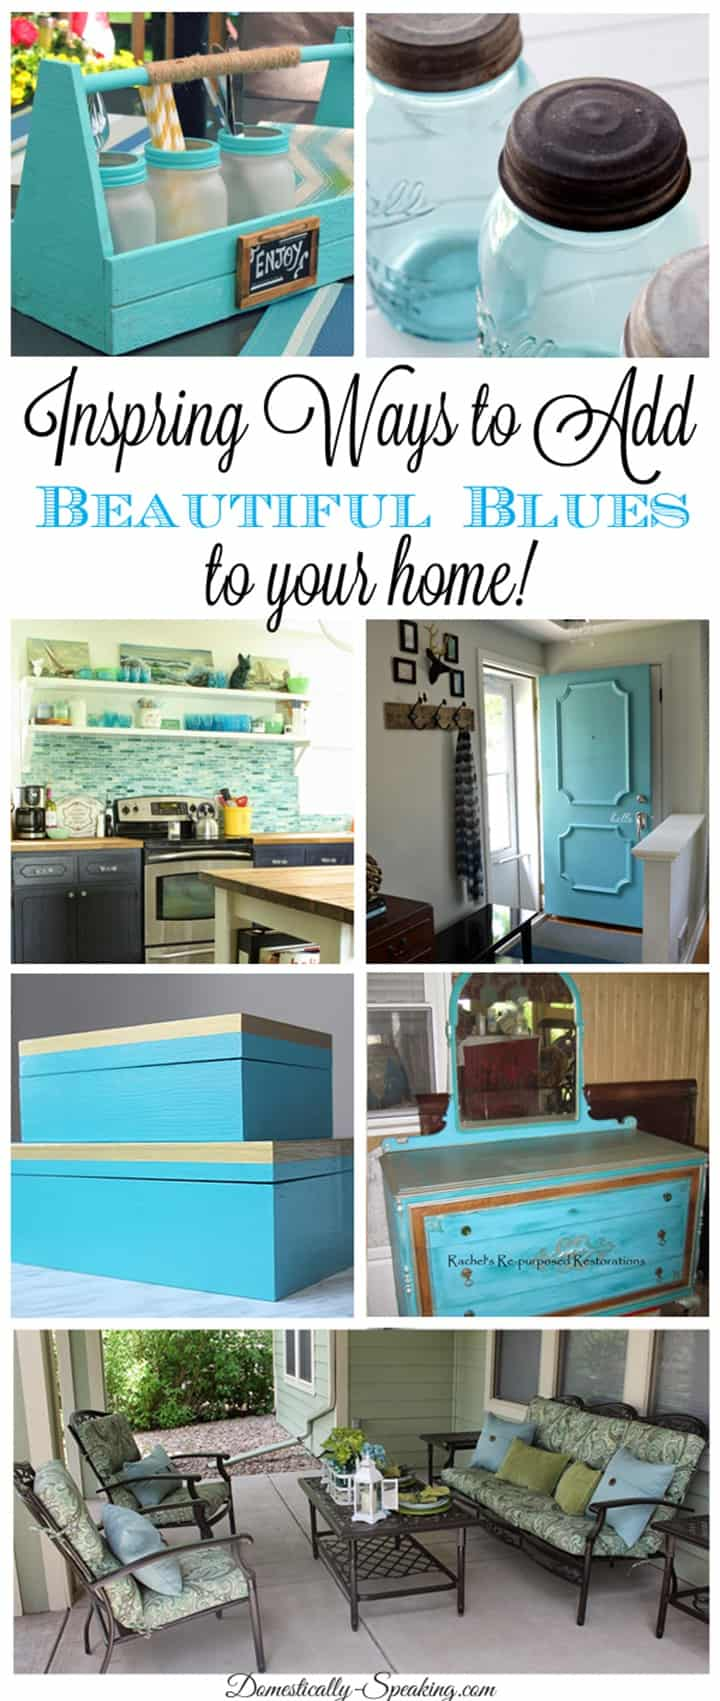 7 Inspiring Ways to Add Beautiful Blues to Your Home